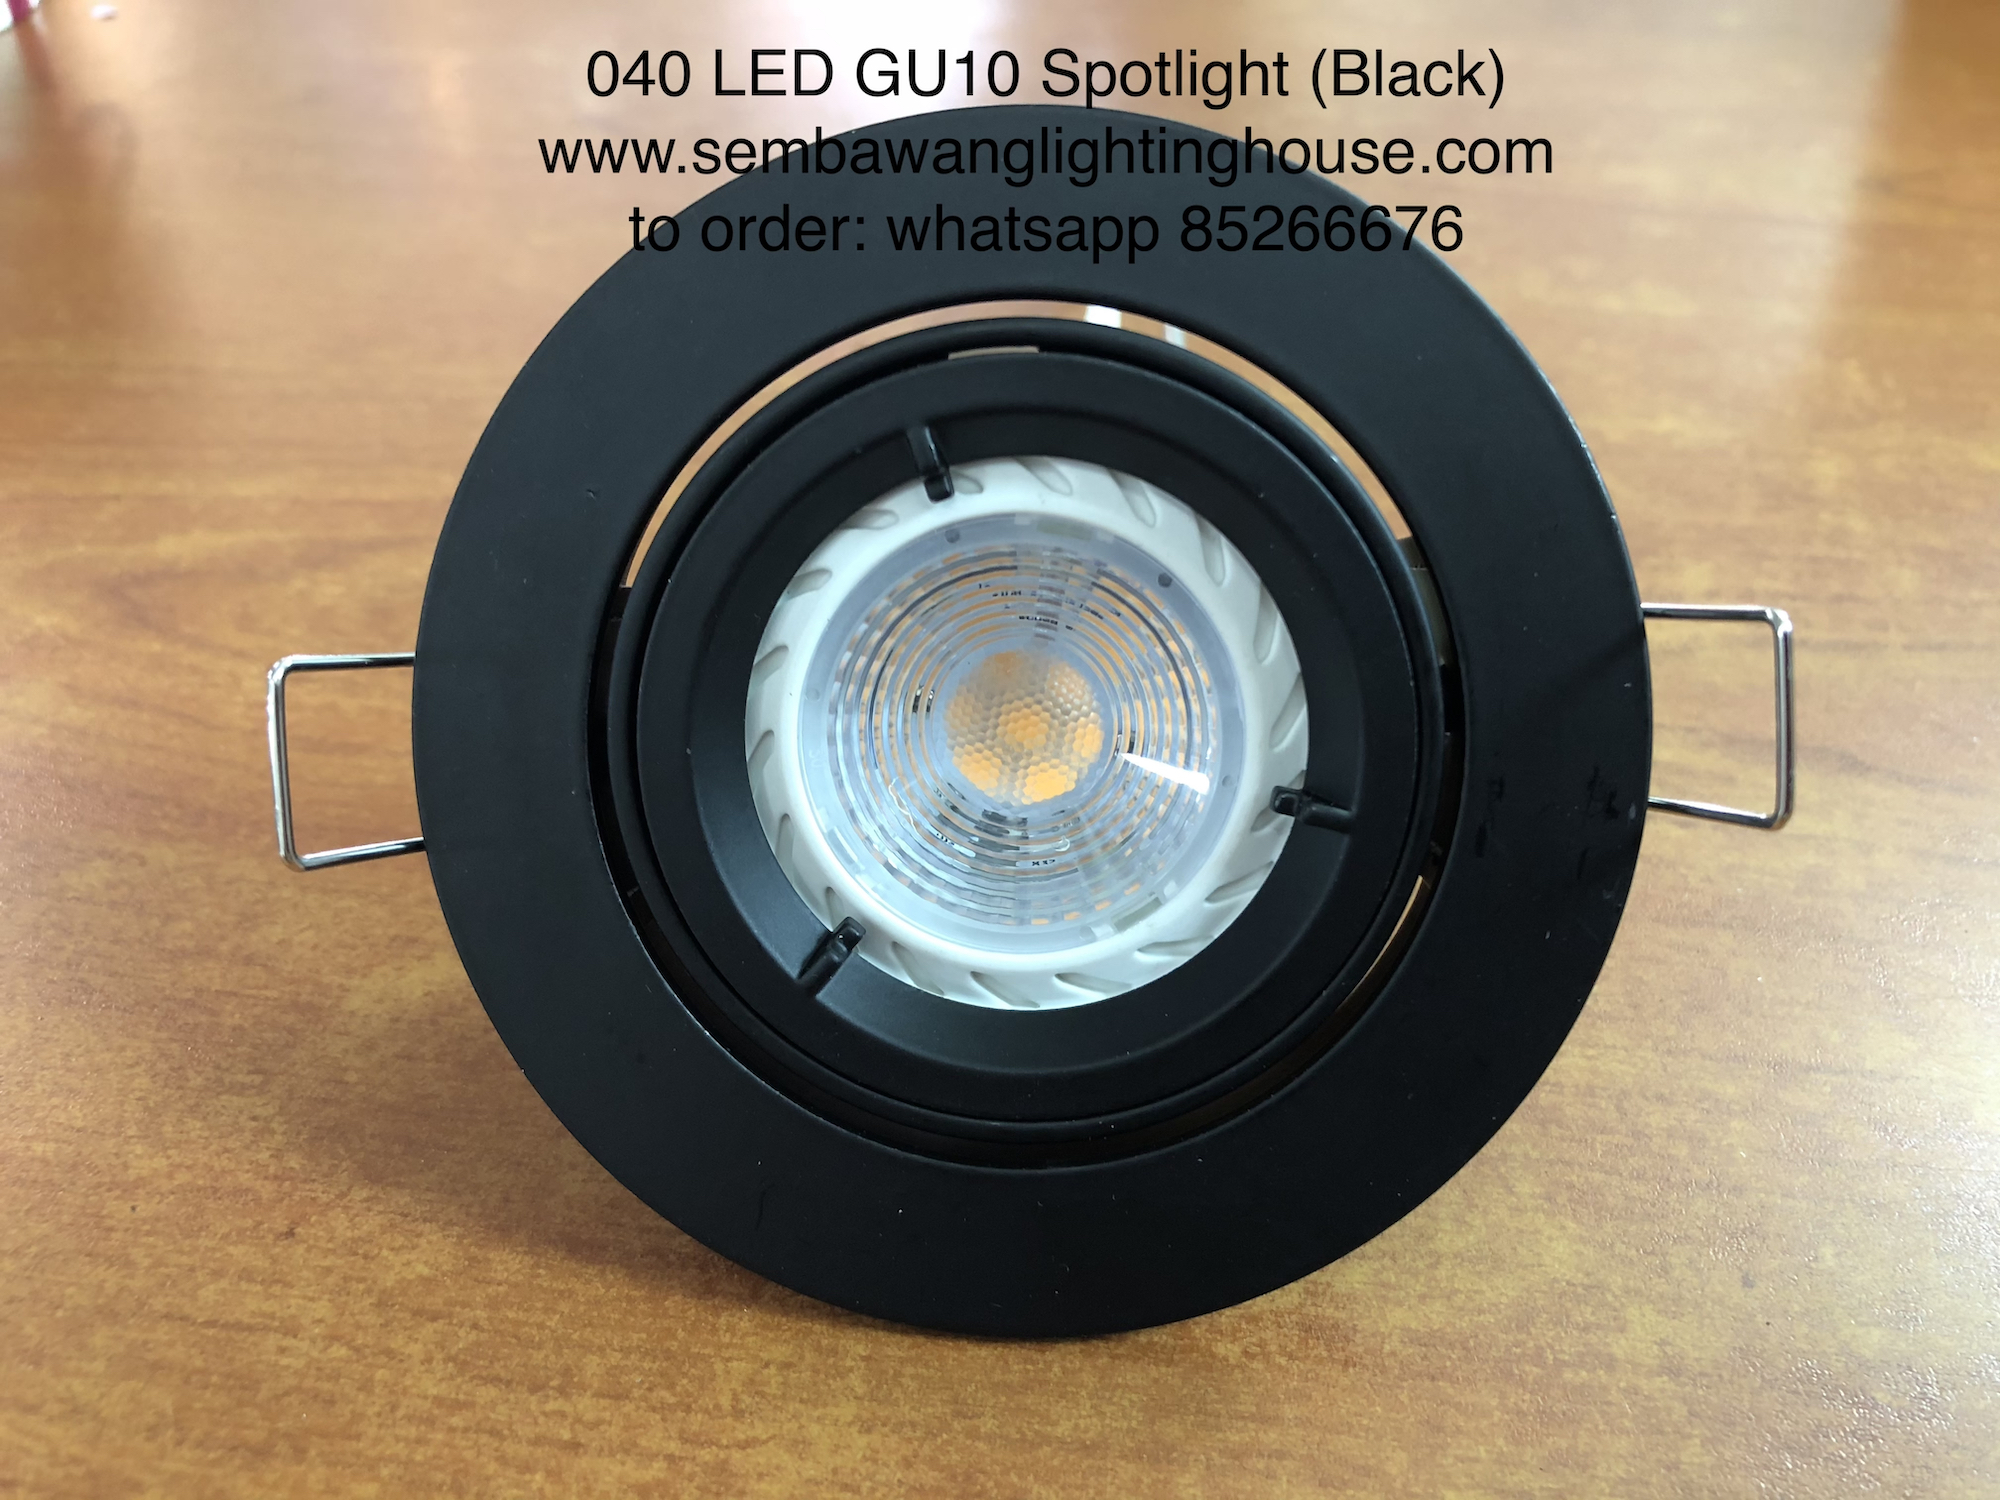 040-bk-led-spotlight-gu10-a.jpg